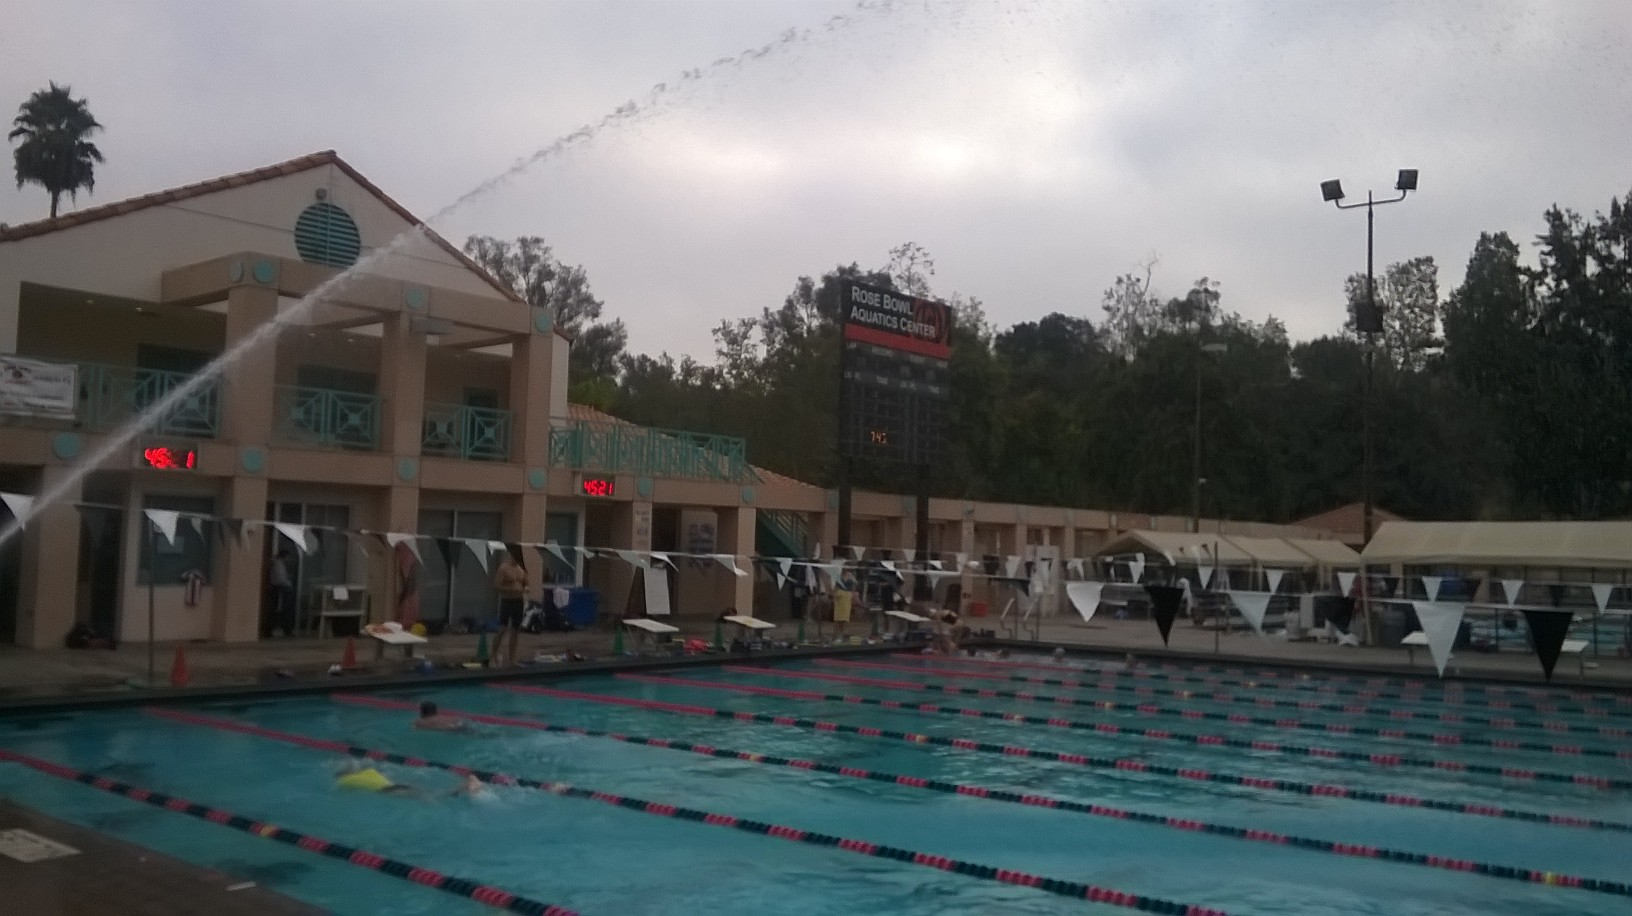 0253 - Rose Bowl Aquatic Center (Pasadena)